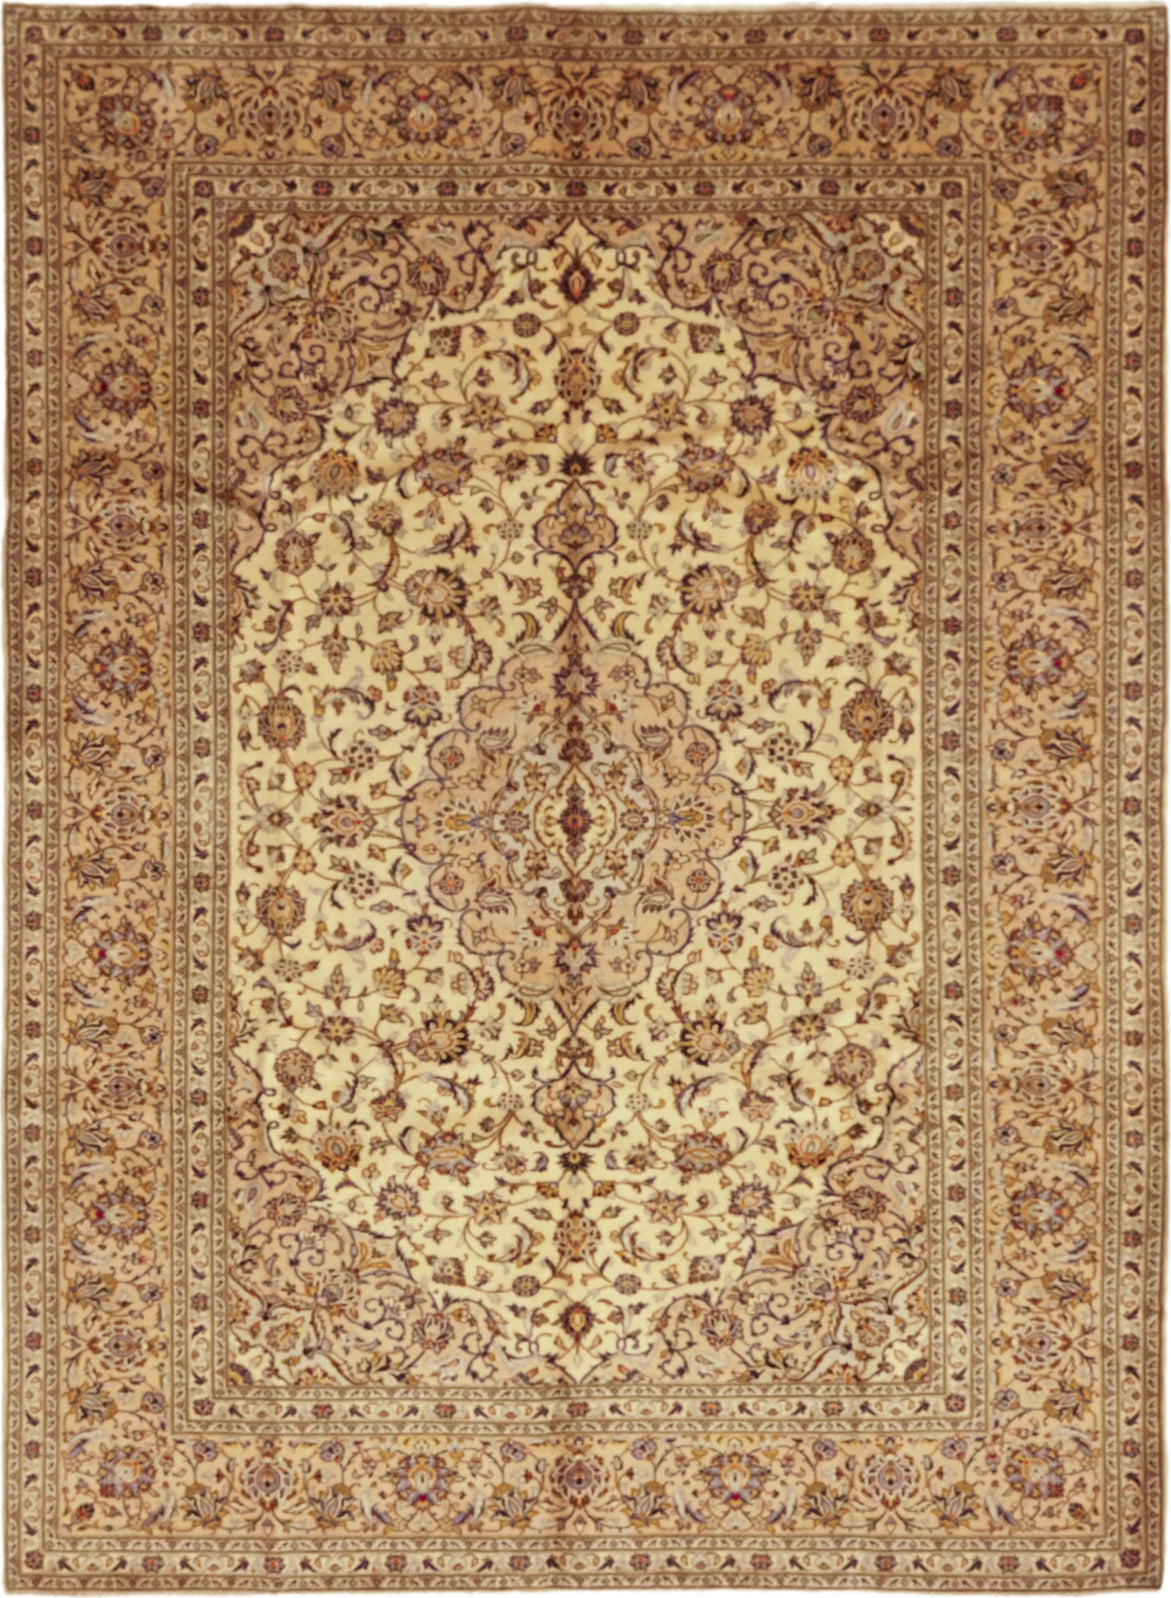 Solo Rugs Kashan M6085-22111 Cream Area Rug main image